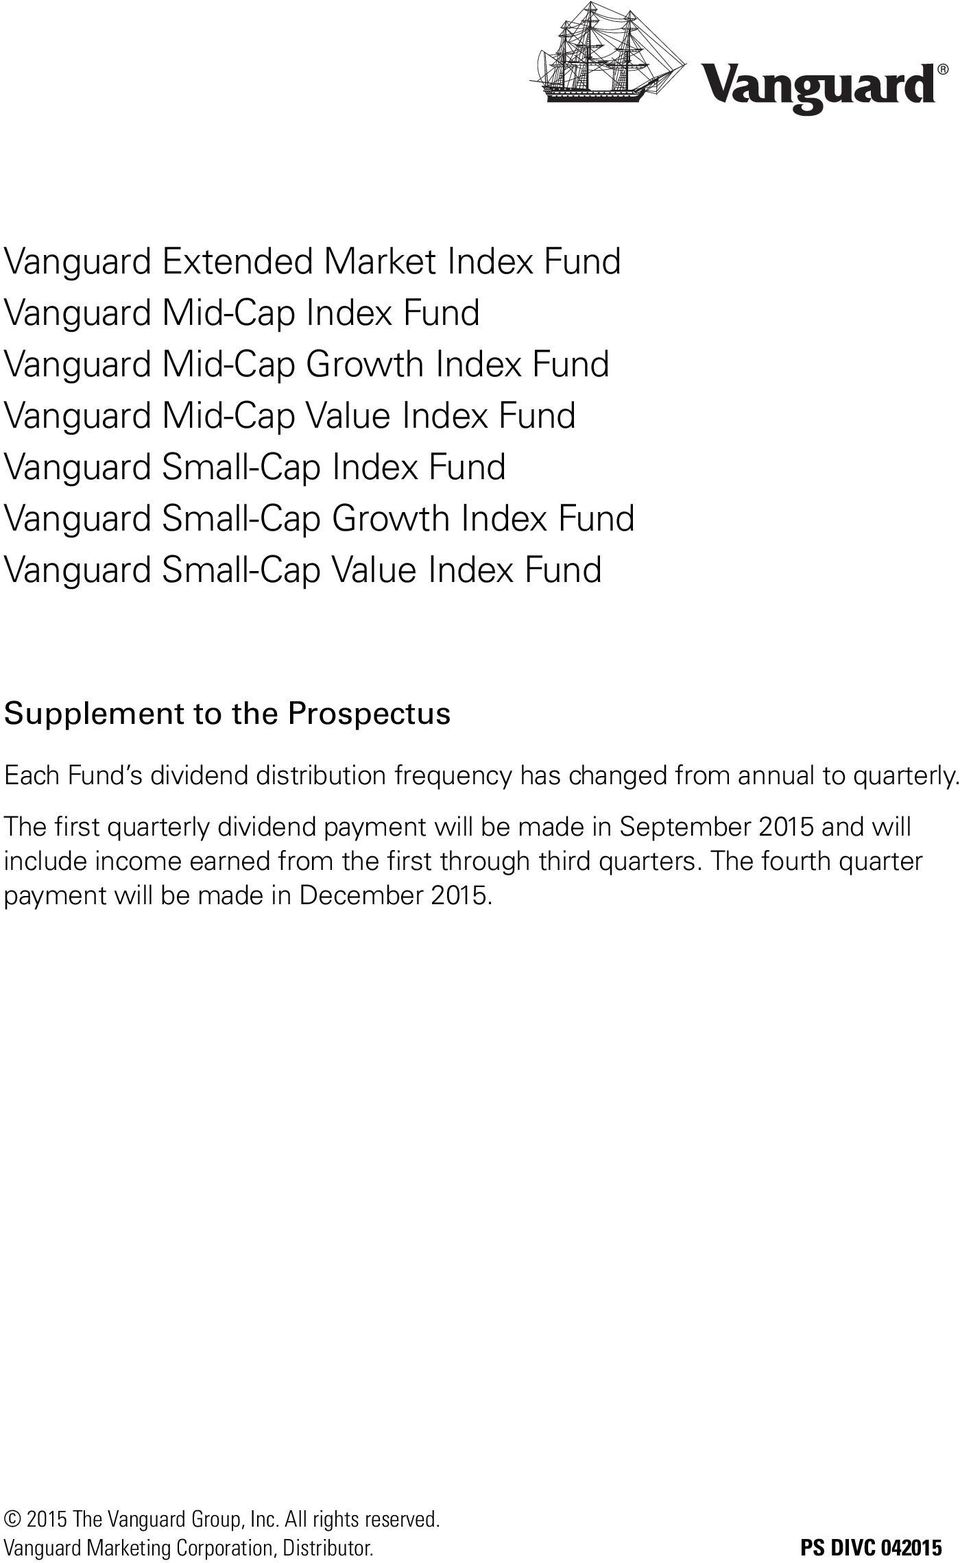 annual to quarterly. The first quarterly dividend payment will be made in September 2015 and will include income earned from the first through third quarters.